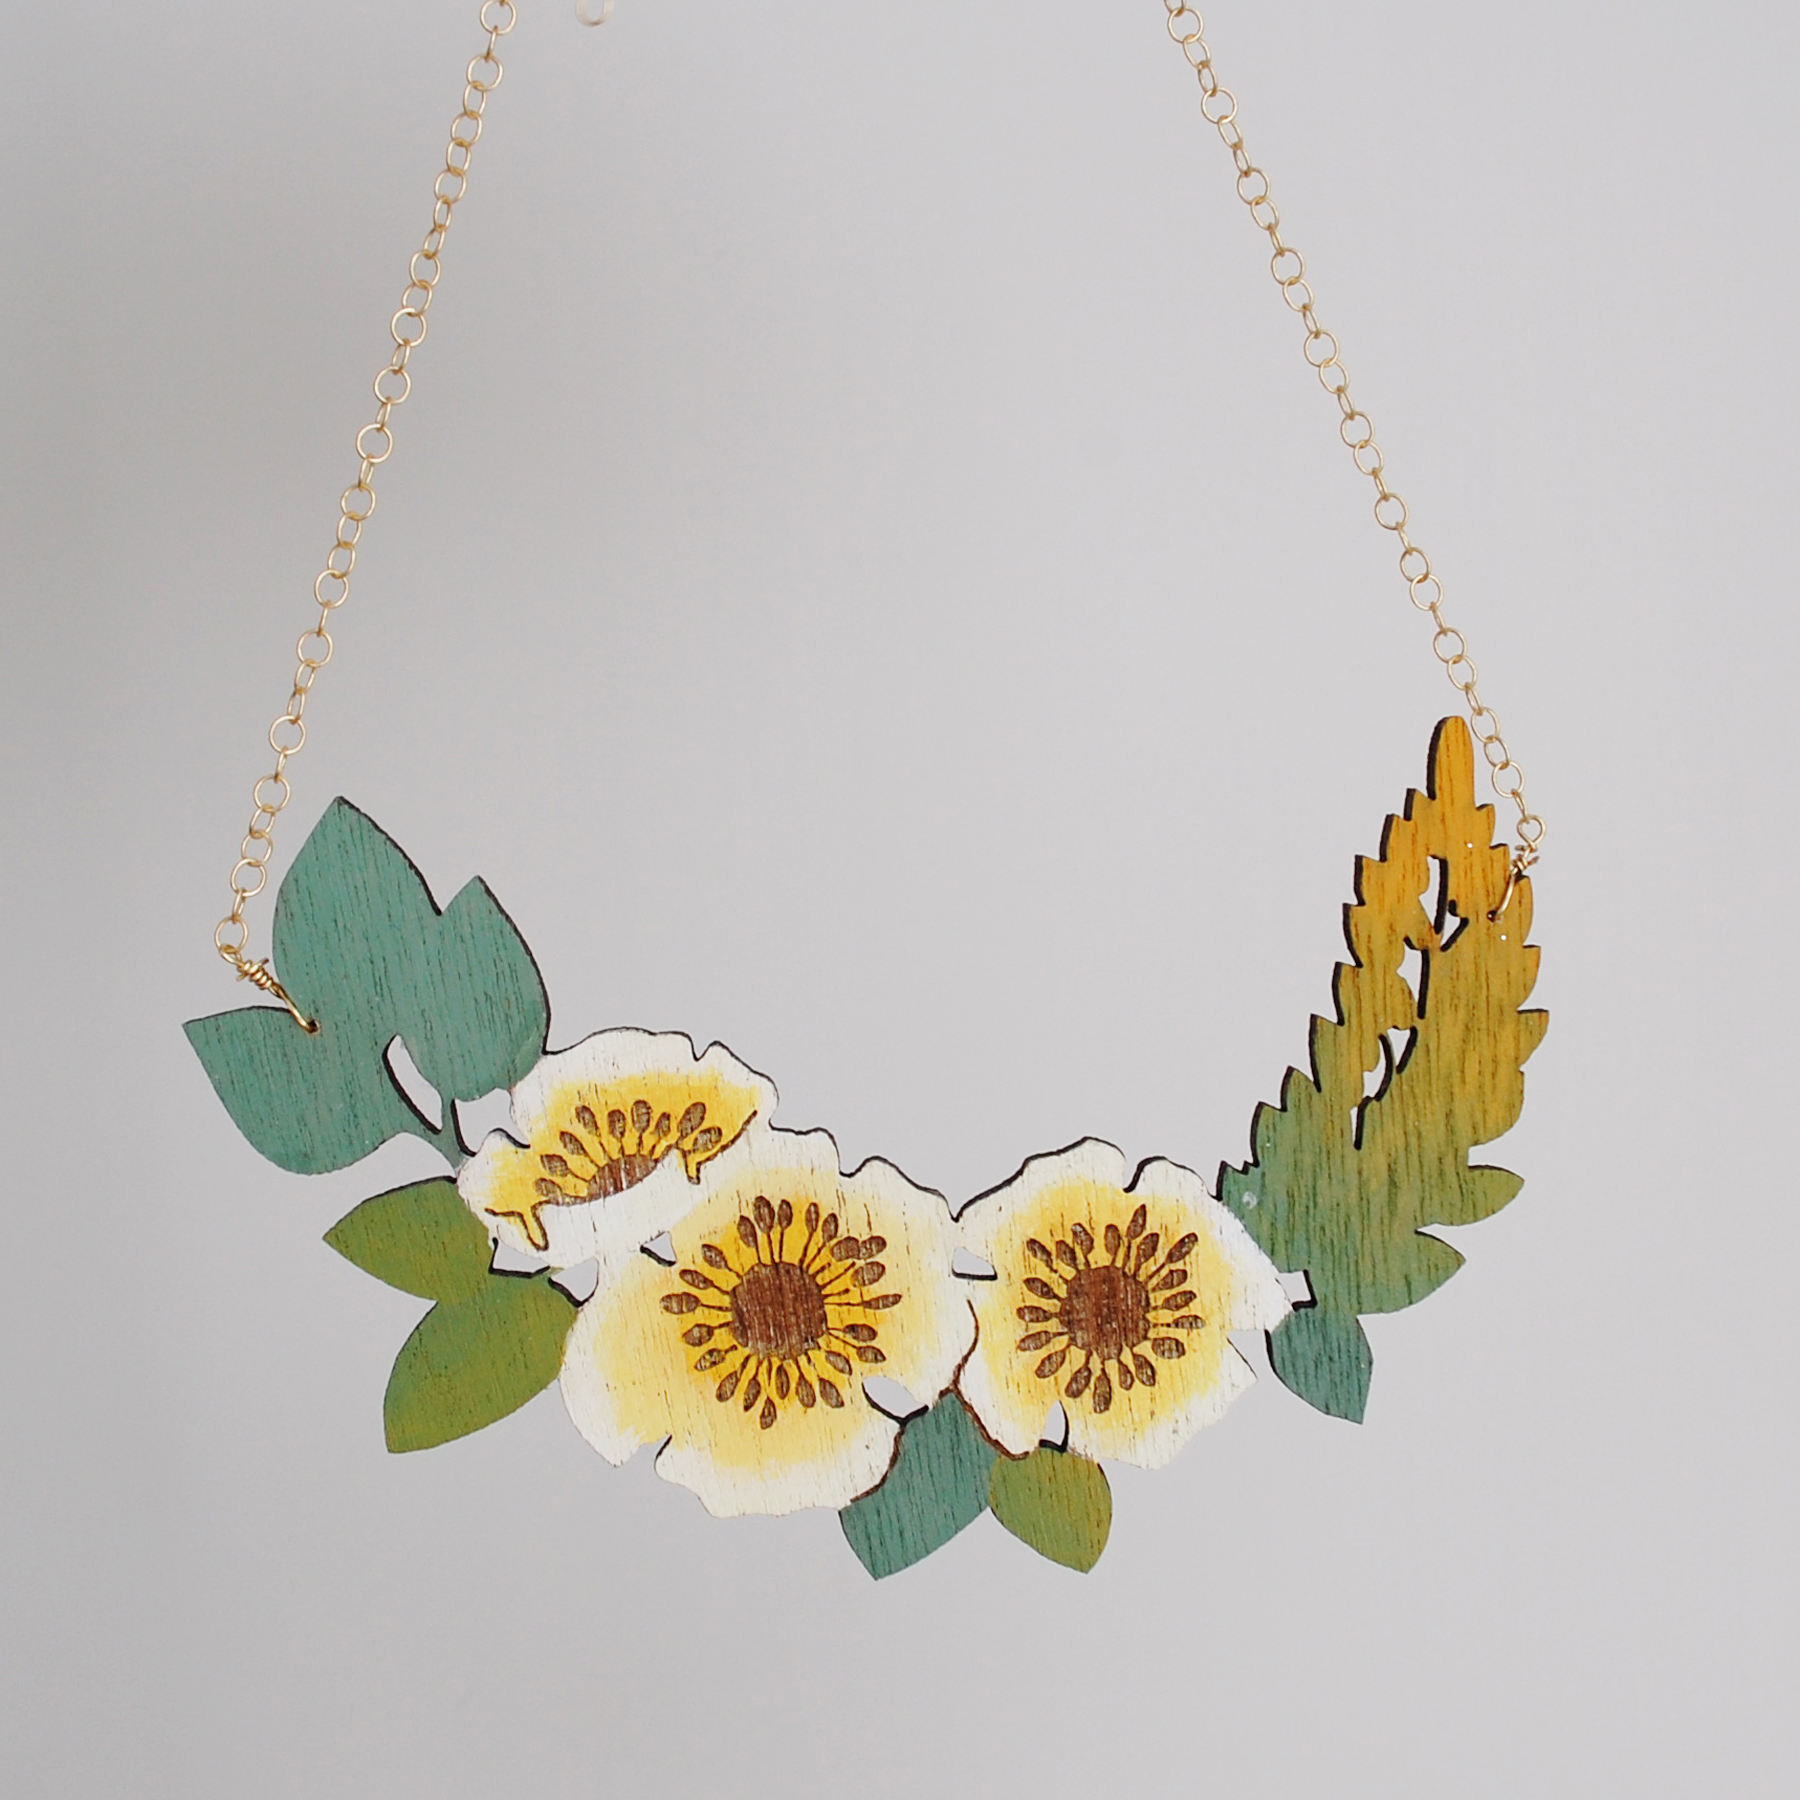 Rose_Yellow_Green_Necklace_01.jpg